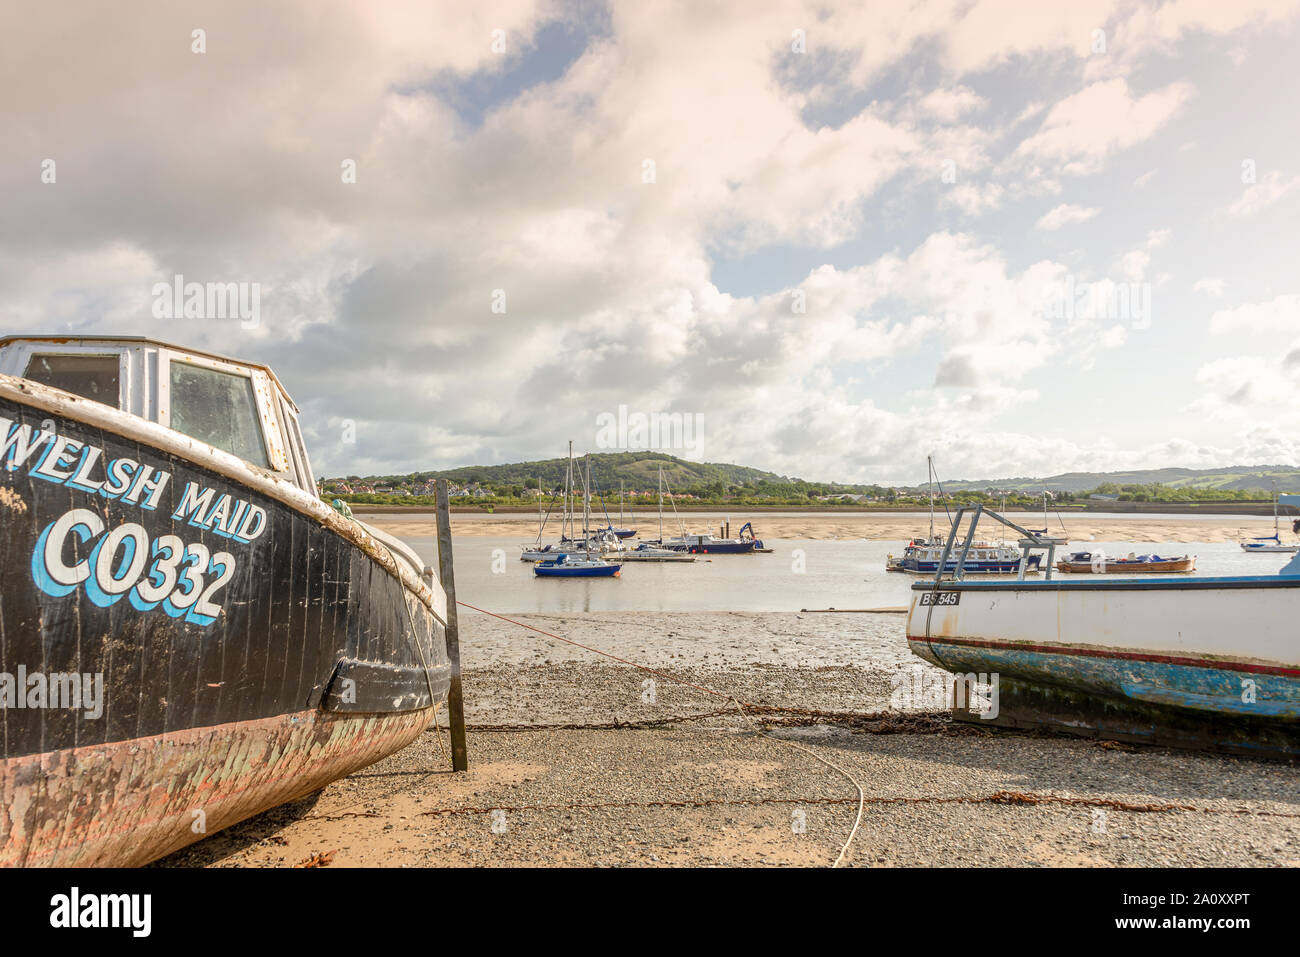 St George's Channel at Conwy.  Two boats are aground on the sand and others are afloat in the channel. Hills are  in the distance. Stock Photo